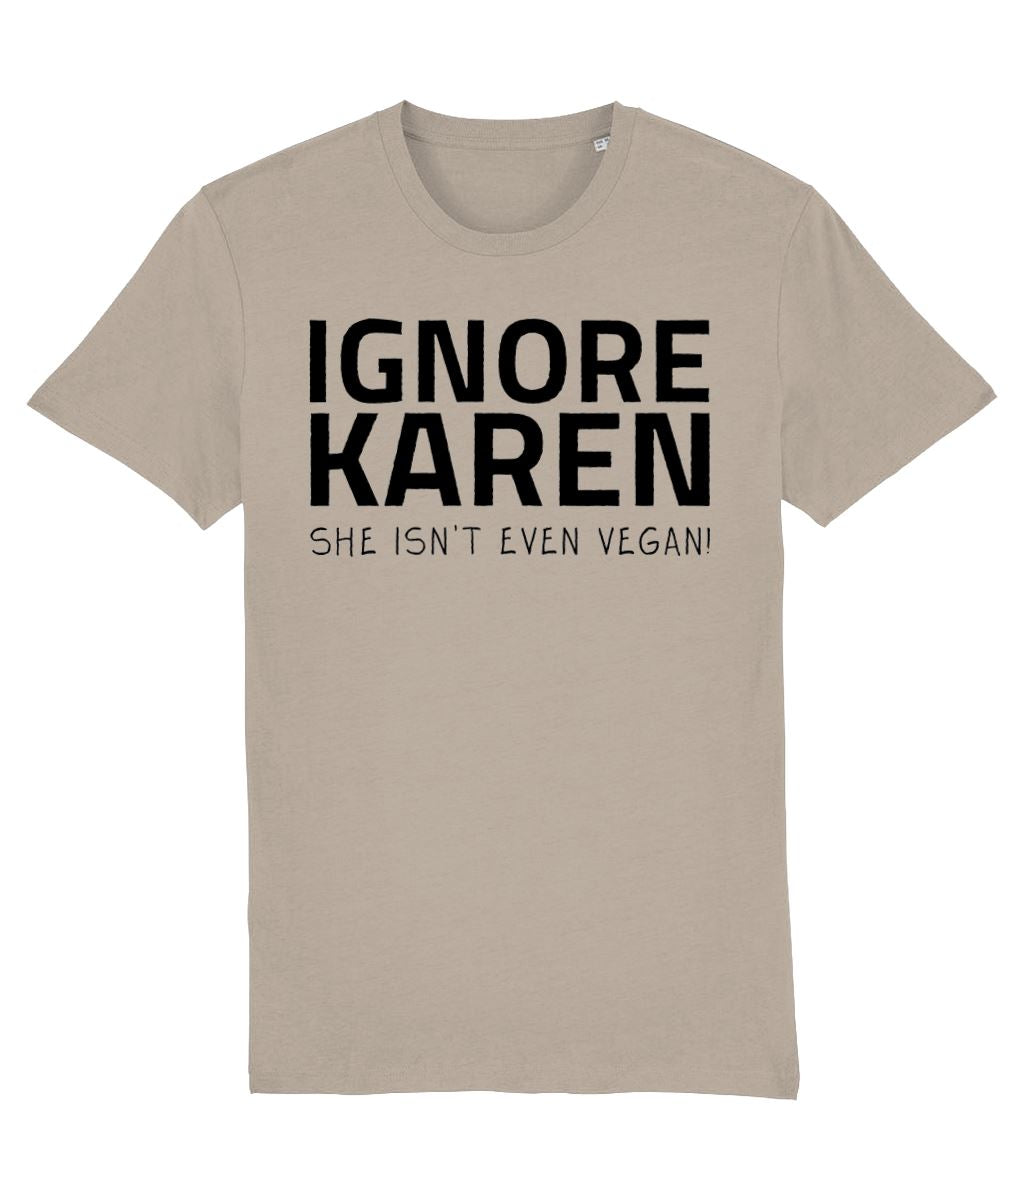 """Ignore Karen: She Isn't Even Vegan!"" - Those Vegan Guys T-Shirt (Unisex) - Light Colours Clothing Vegan Original Desert Dust X-Small"